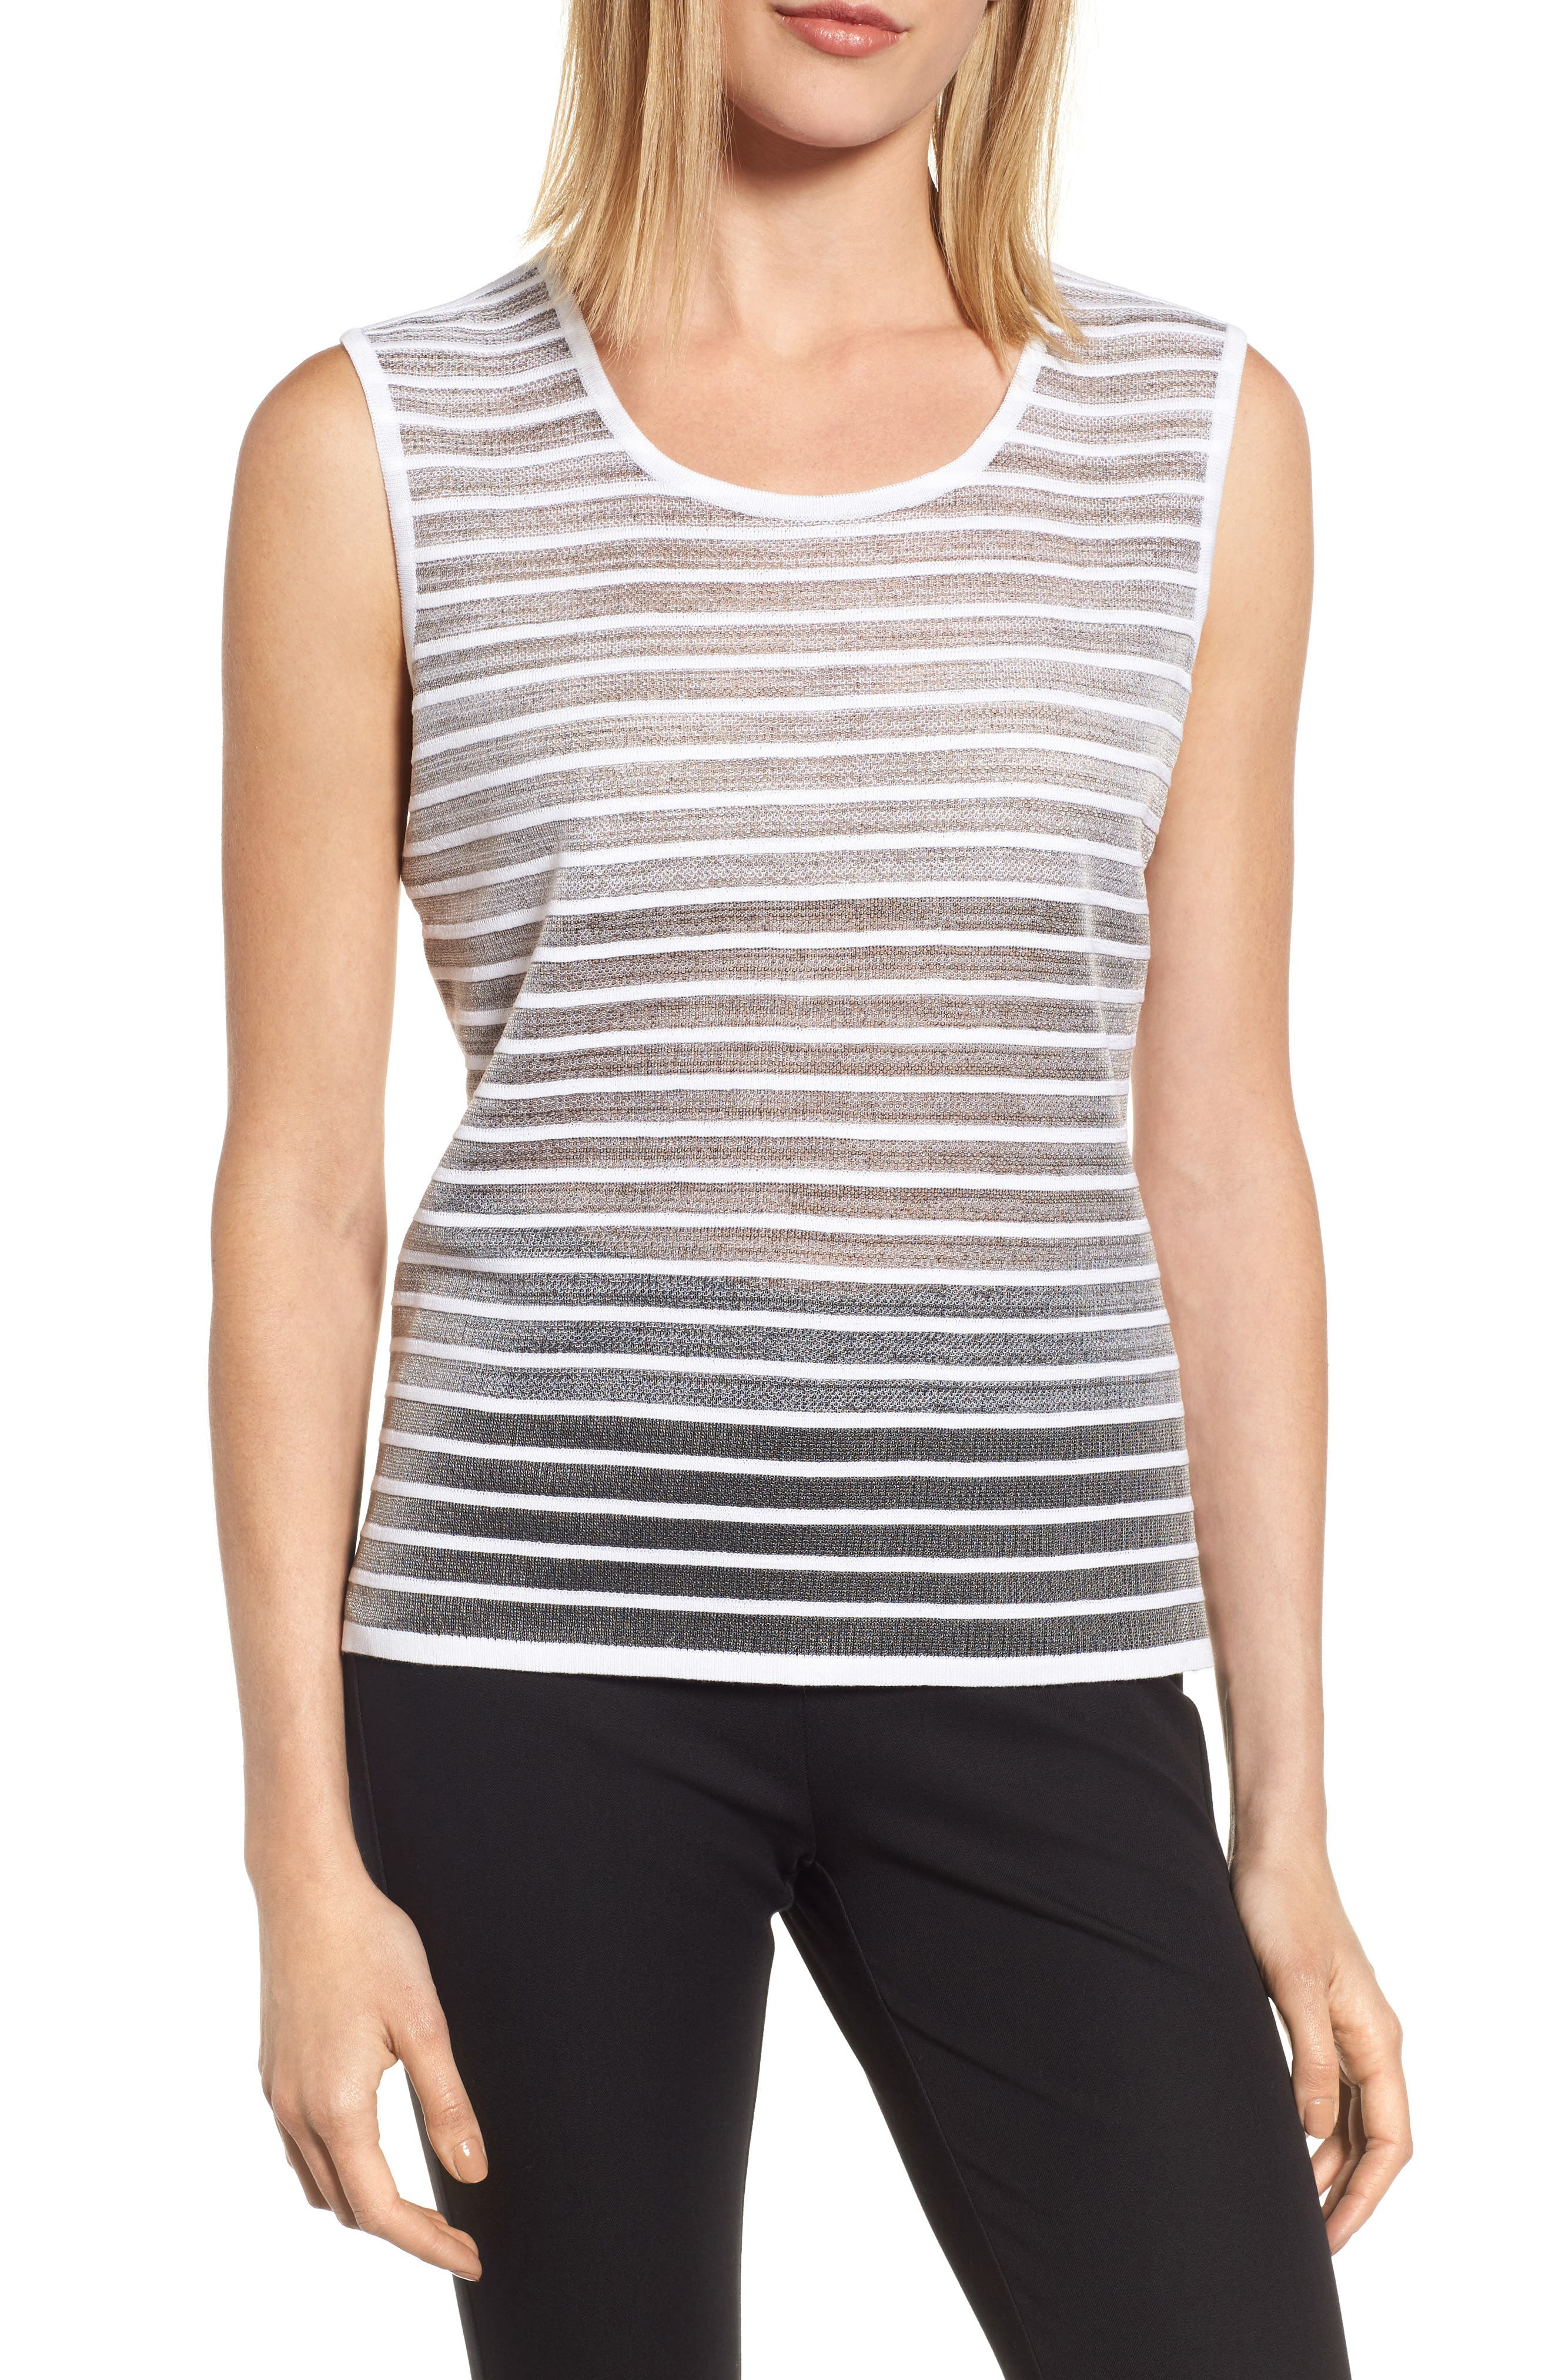 Main Image - Ming Wang Reversible Knit Tank